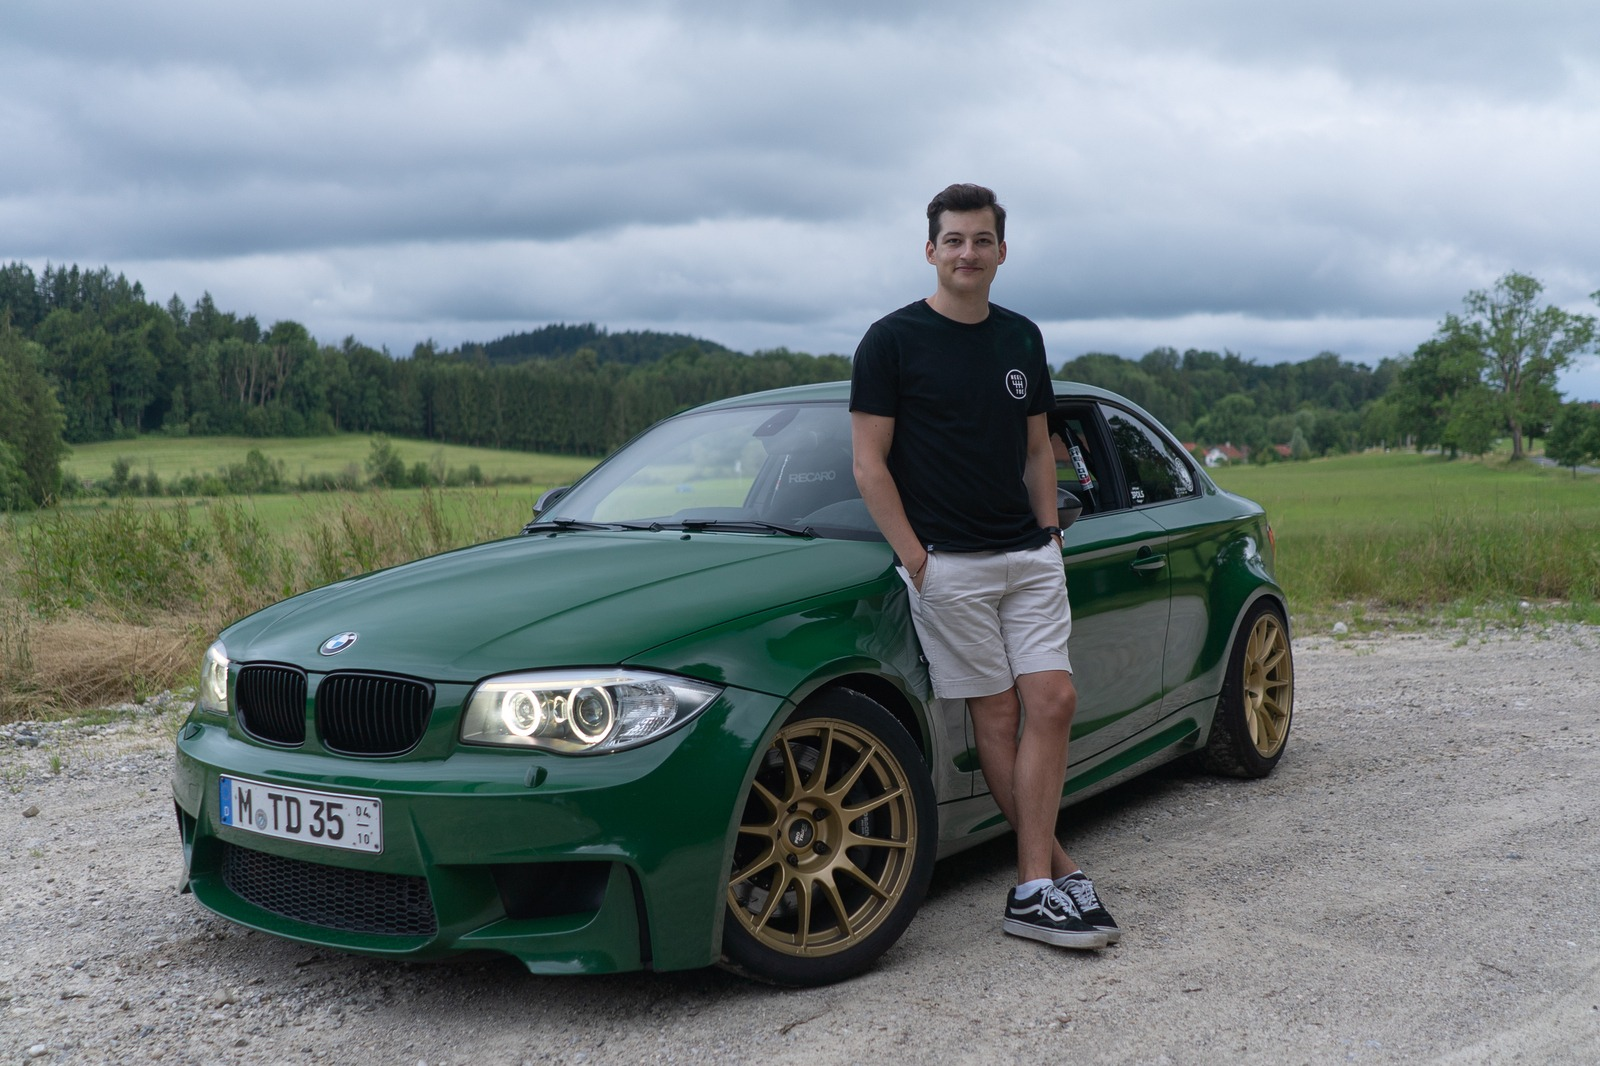 VIDEO: BMW 1M Coupe: Collecting Cars x Heel and Toe